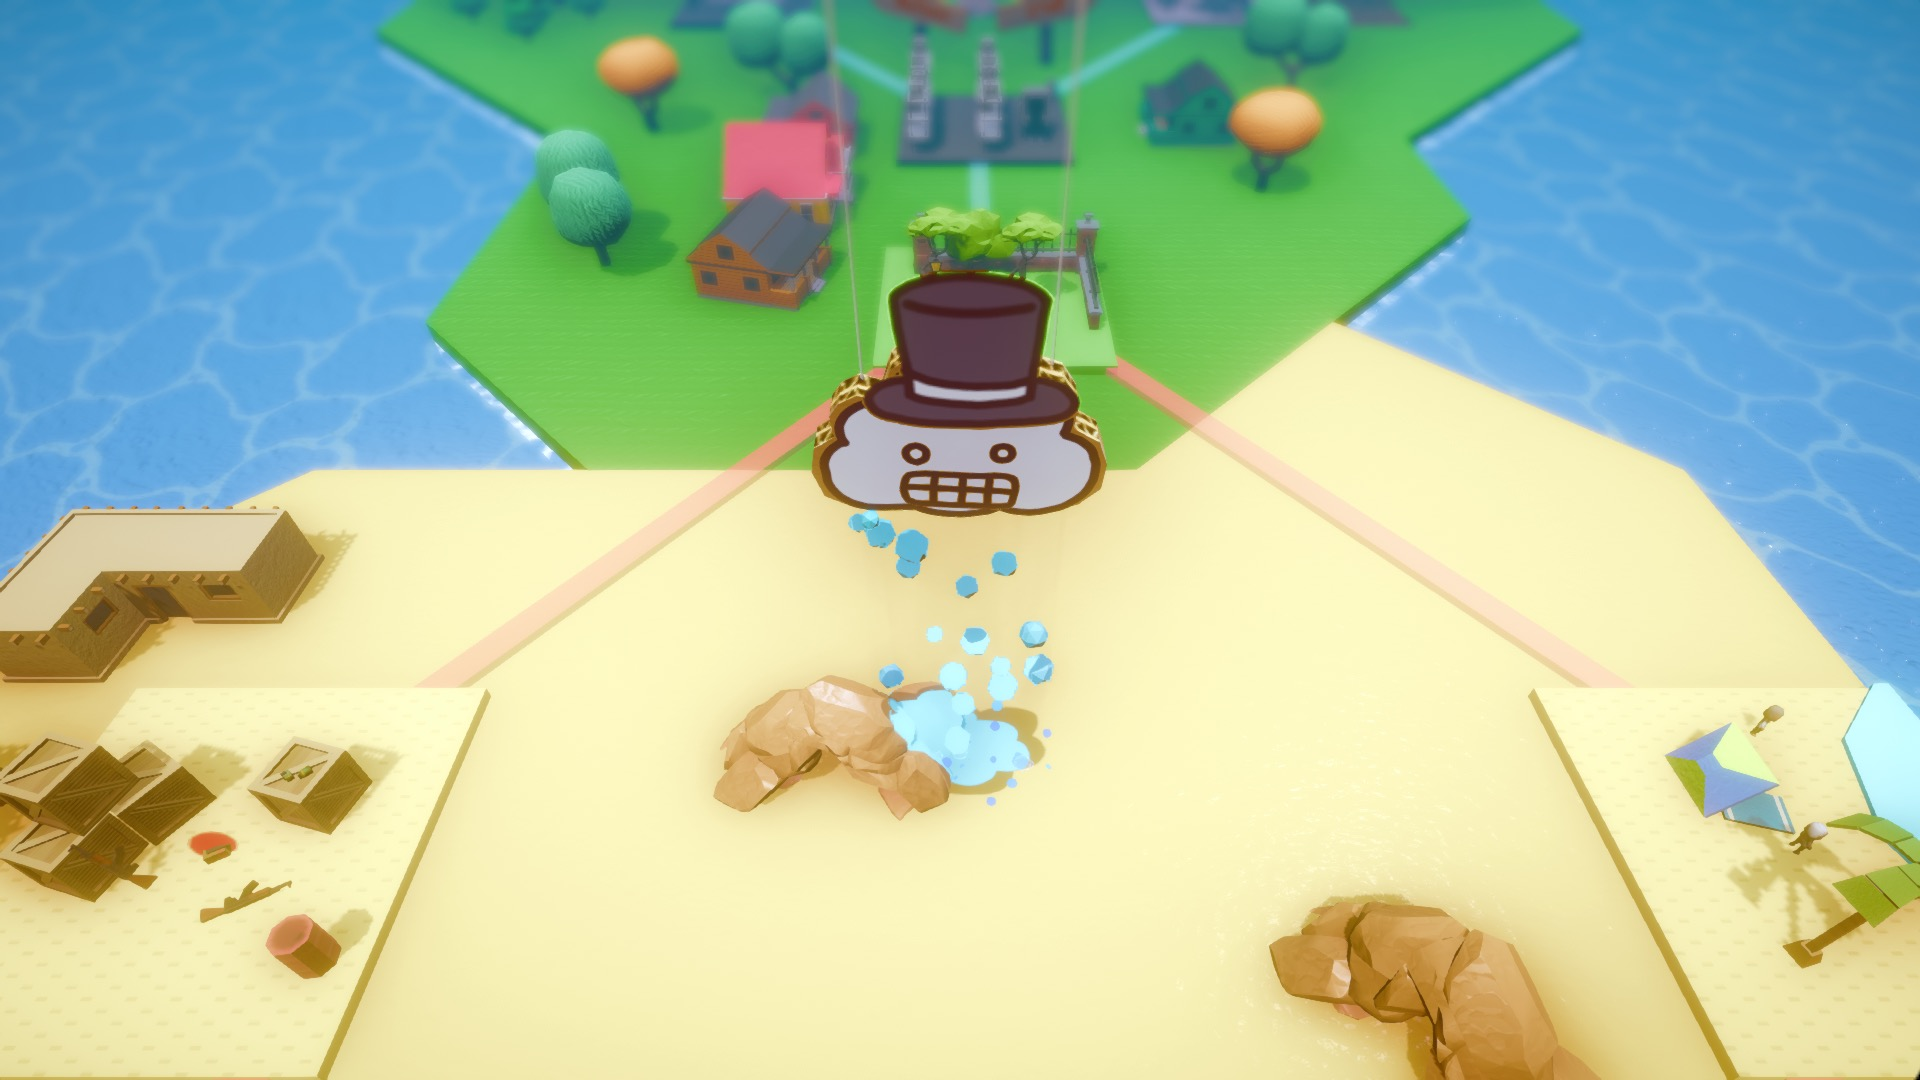 Ruin the day as a cardboard cloud in Rain on Your Parade screenshot